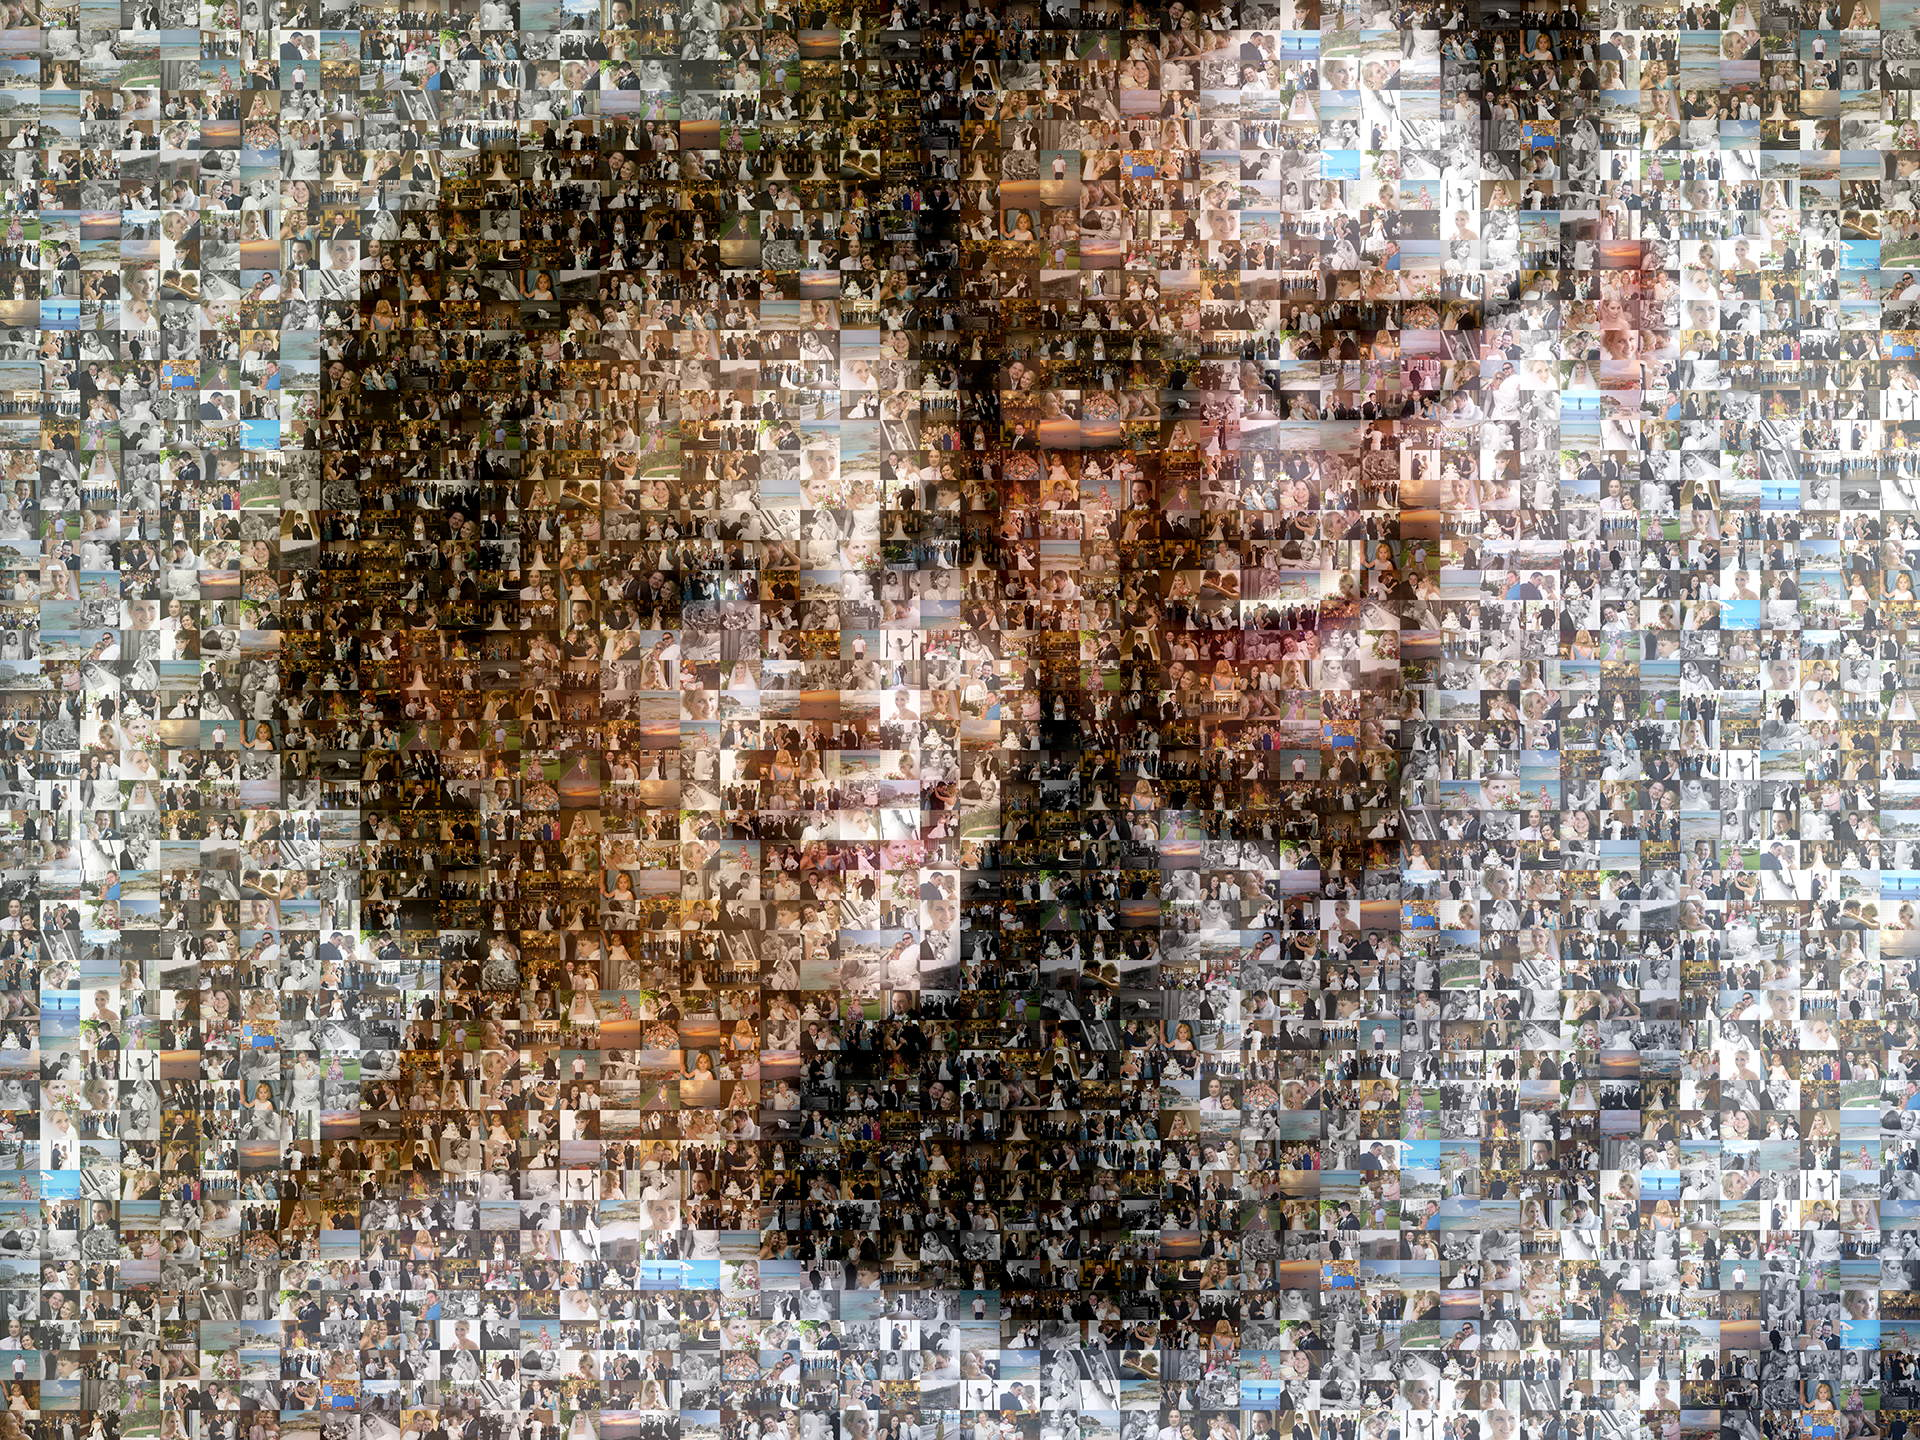 photo mosaic created using 229 wedding photos